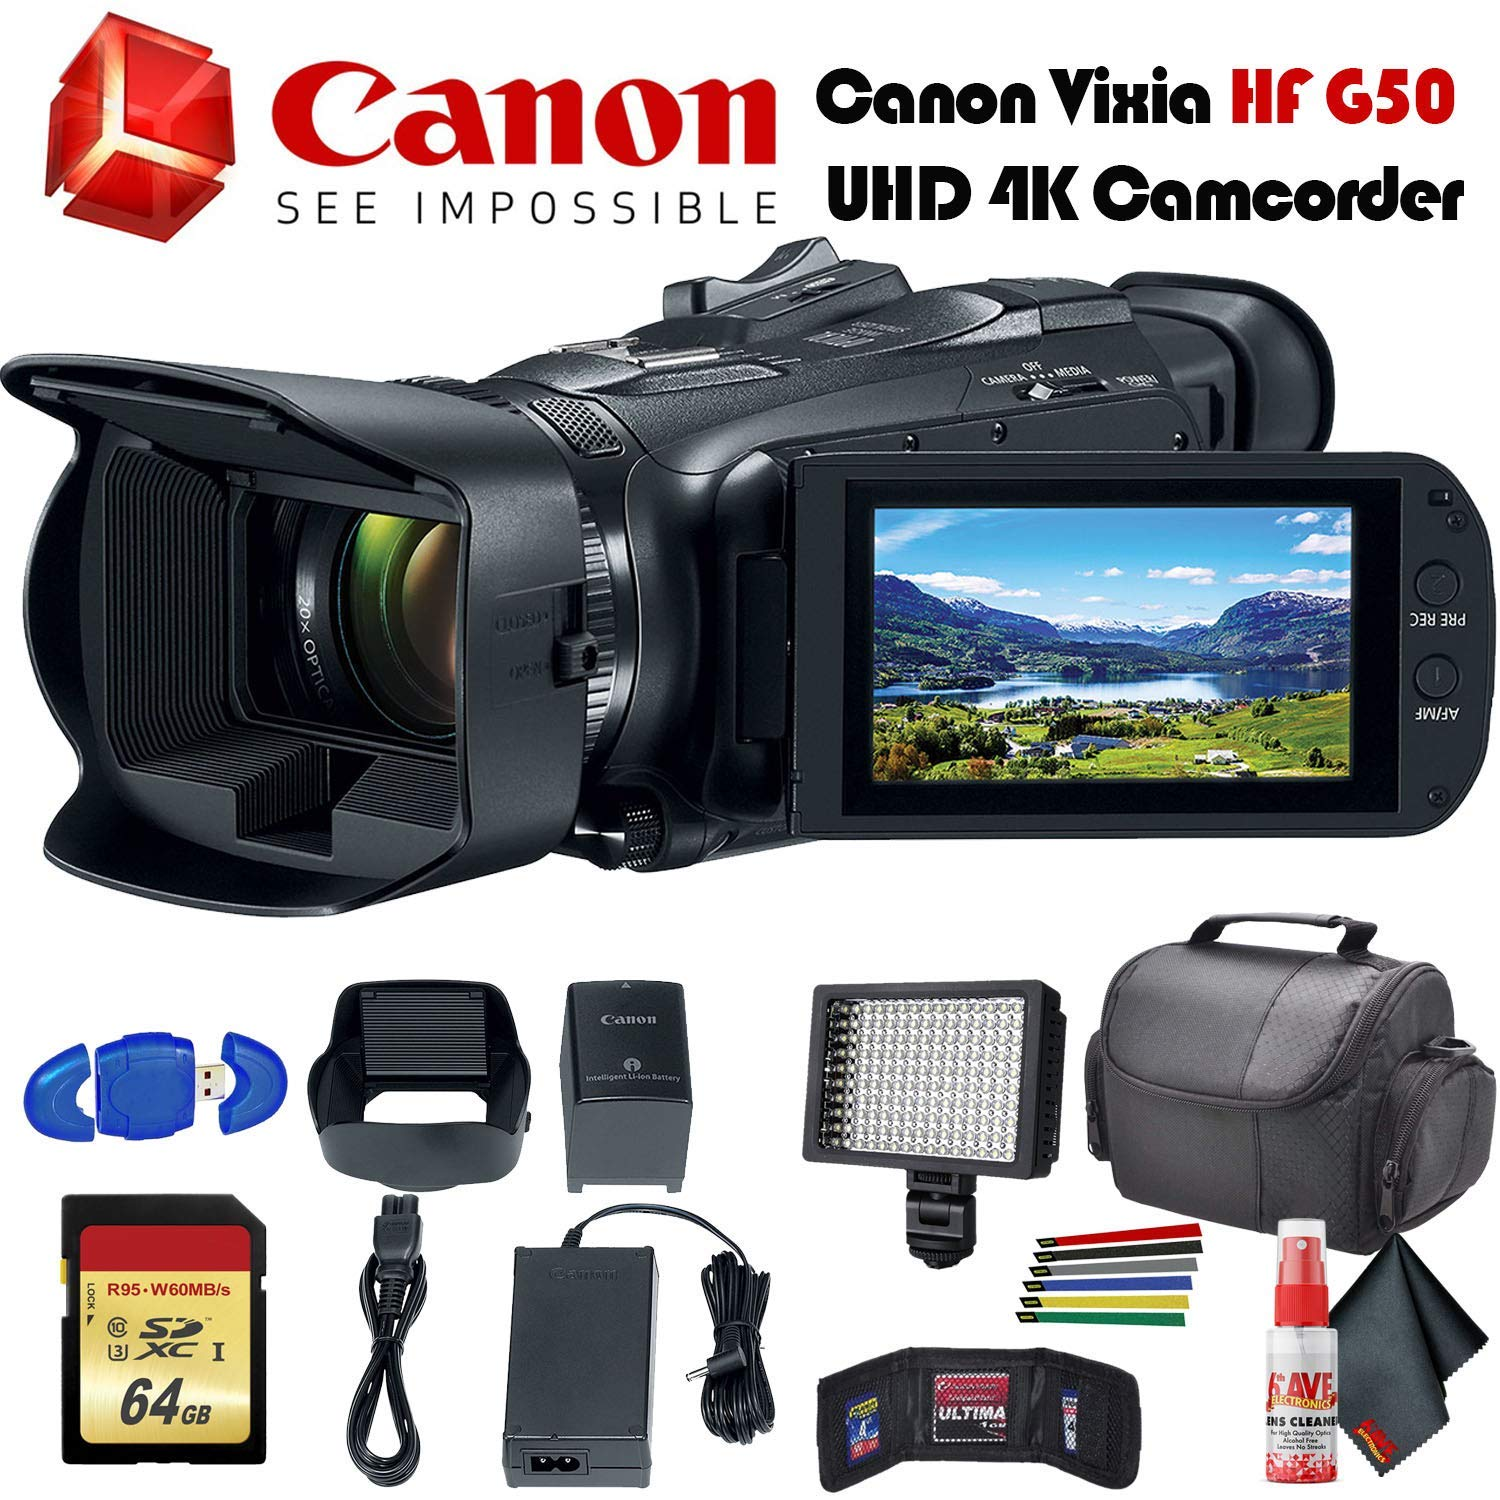 Canon Vixia HF G50 UHD 4K Camcorder (Black) (3667C002) with Padded Case, LED Light, 64GB Memory Card and More Base Bundle by Canon